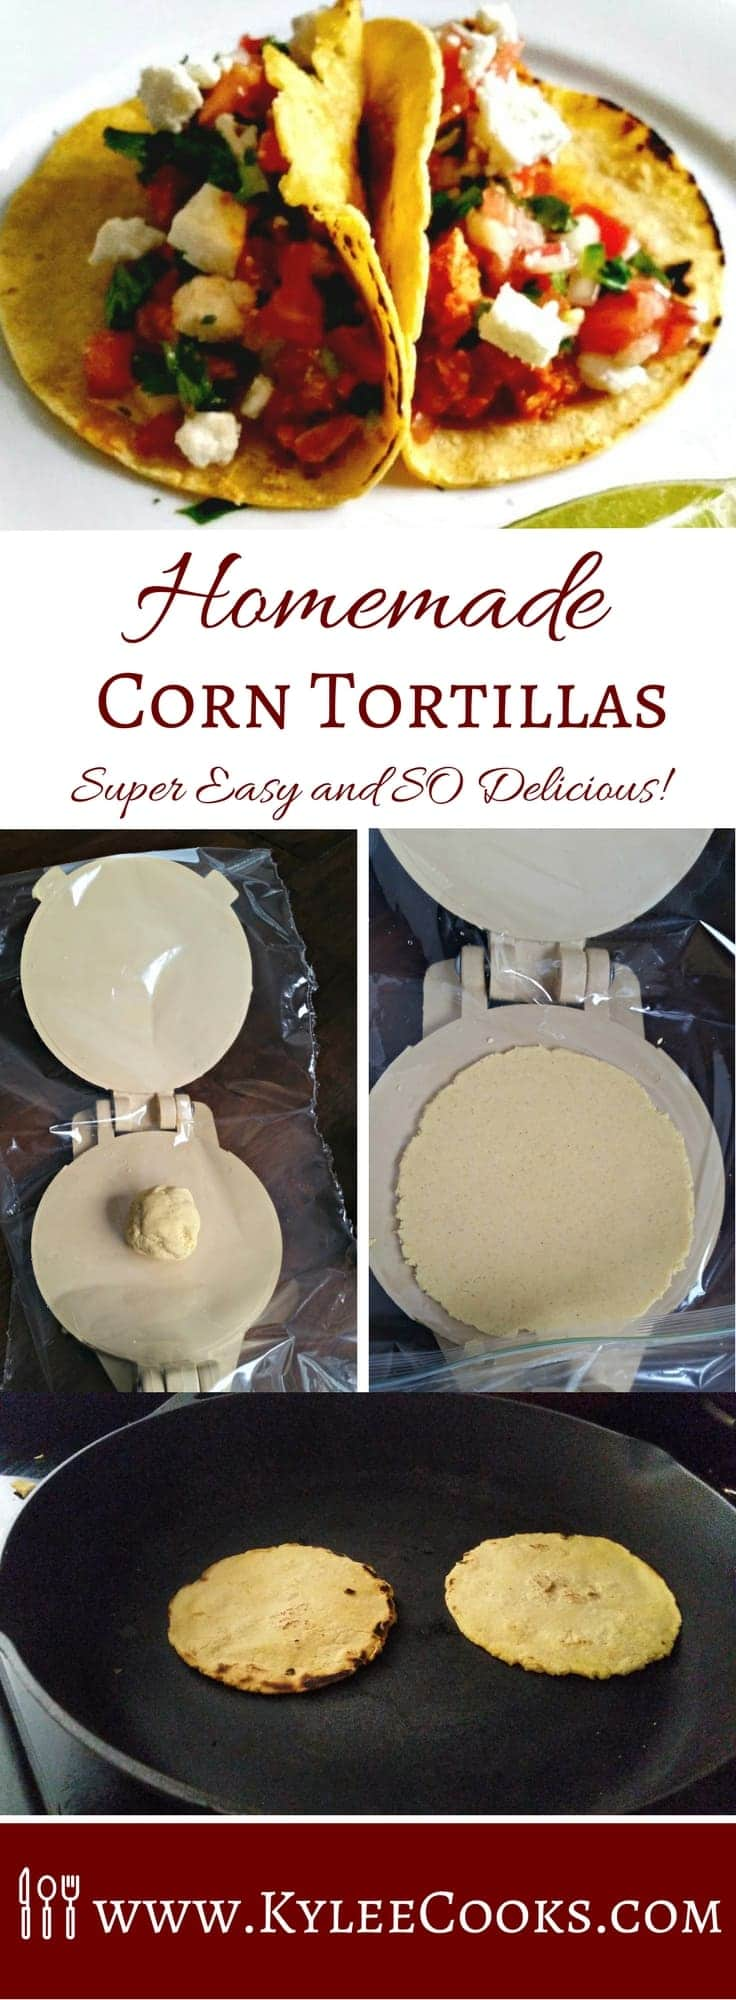 An easy way to add more homemade deliciousness to taco night with your very own, hot-off-the-pan corn tortillas!